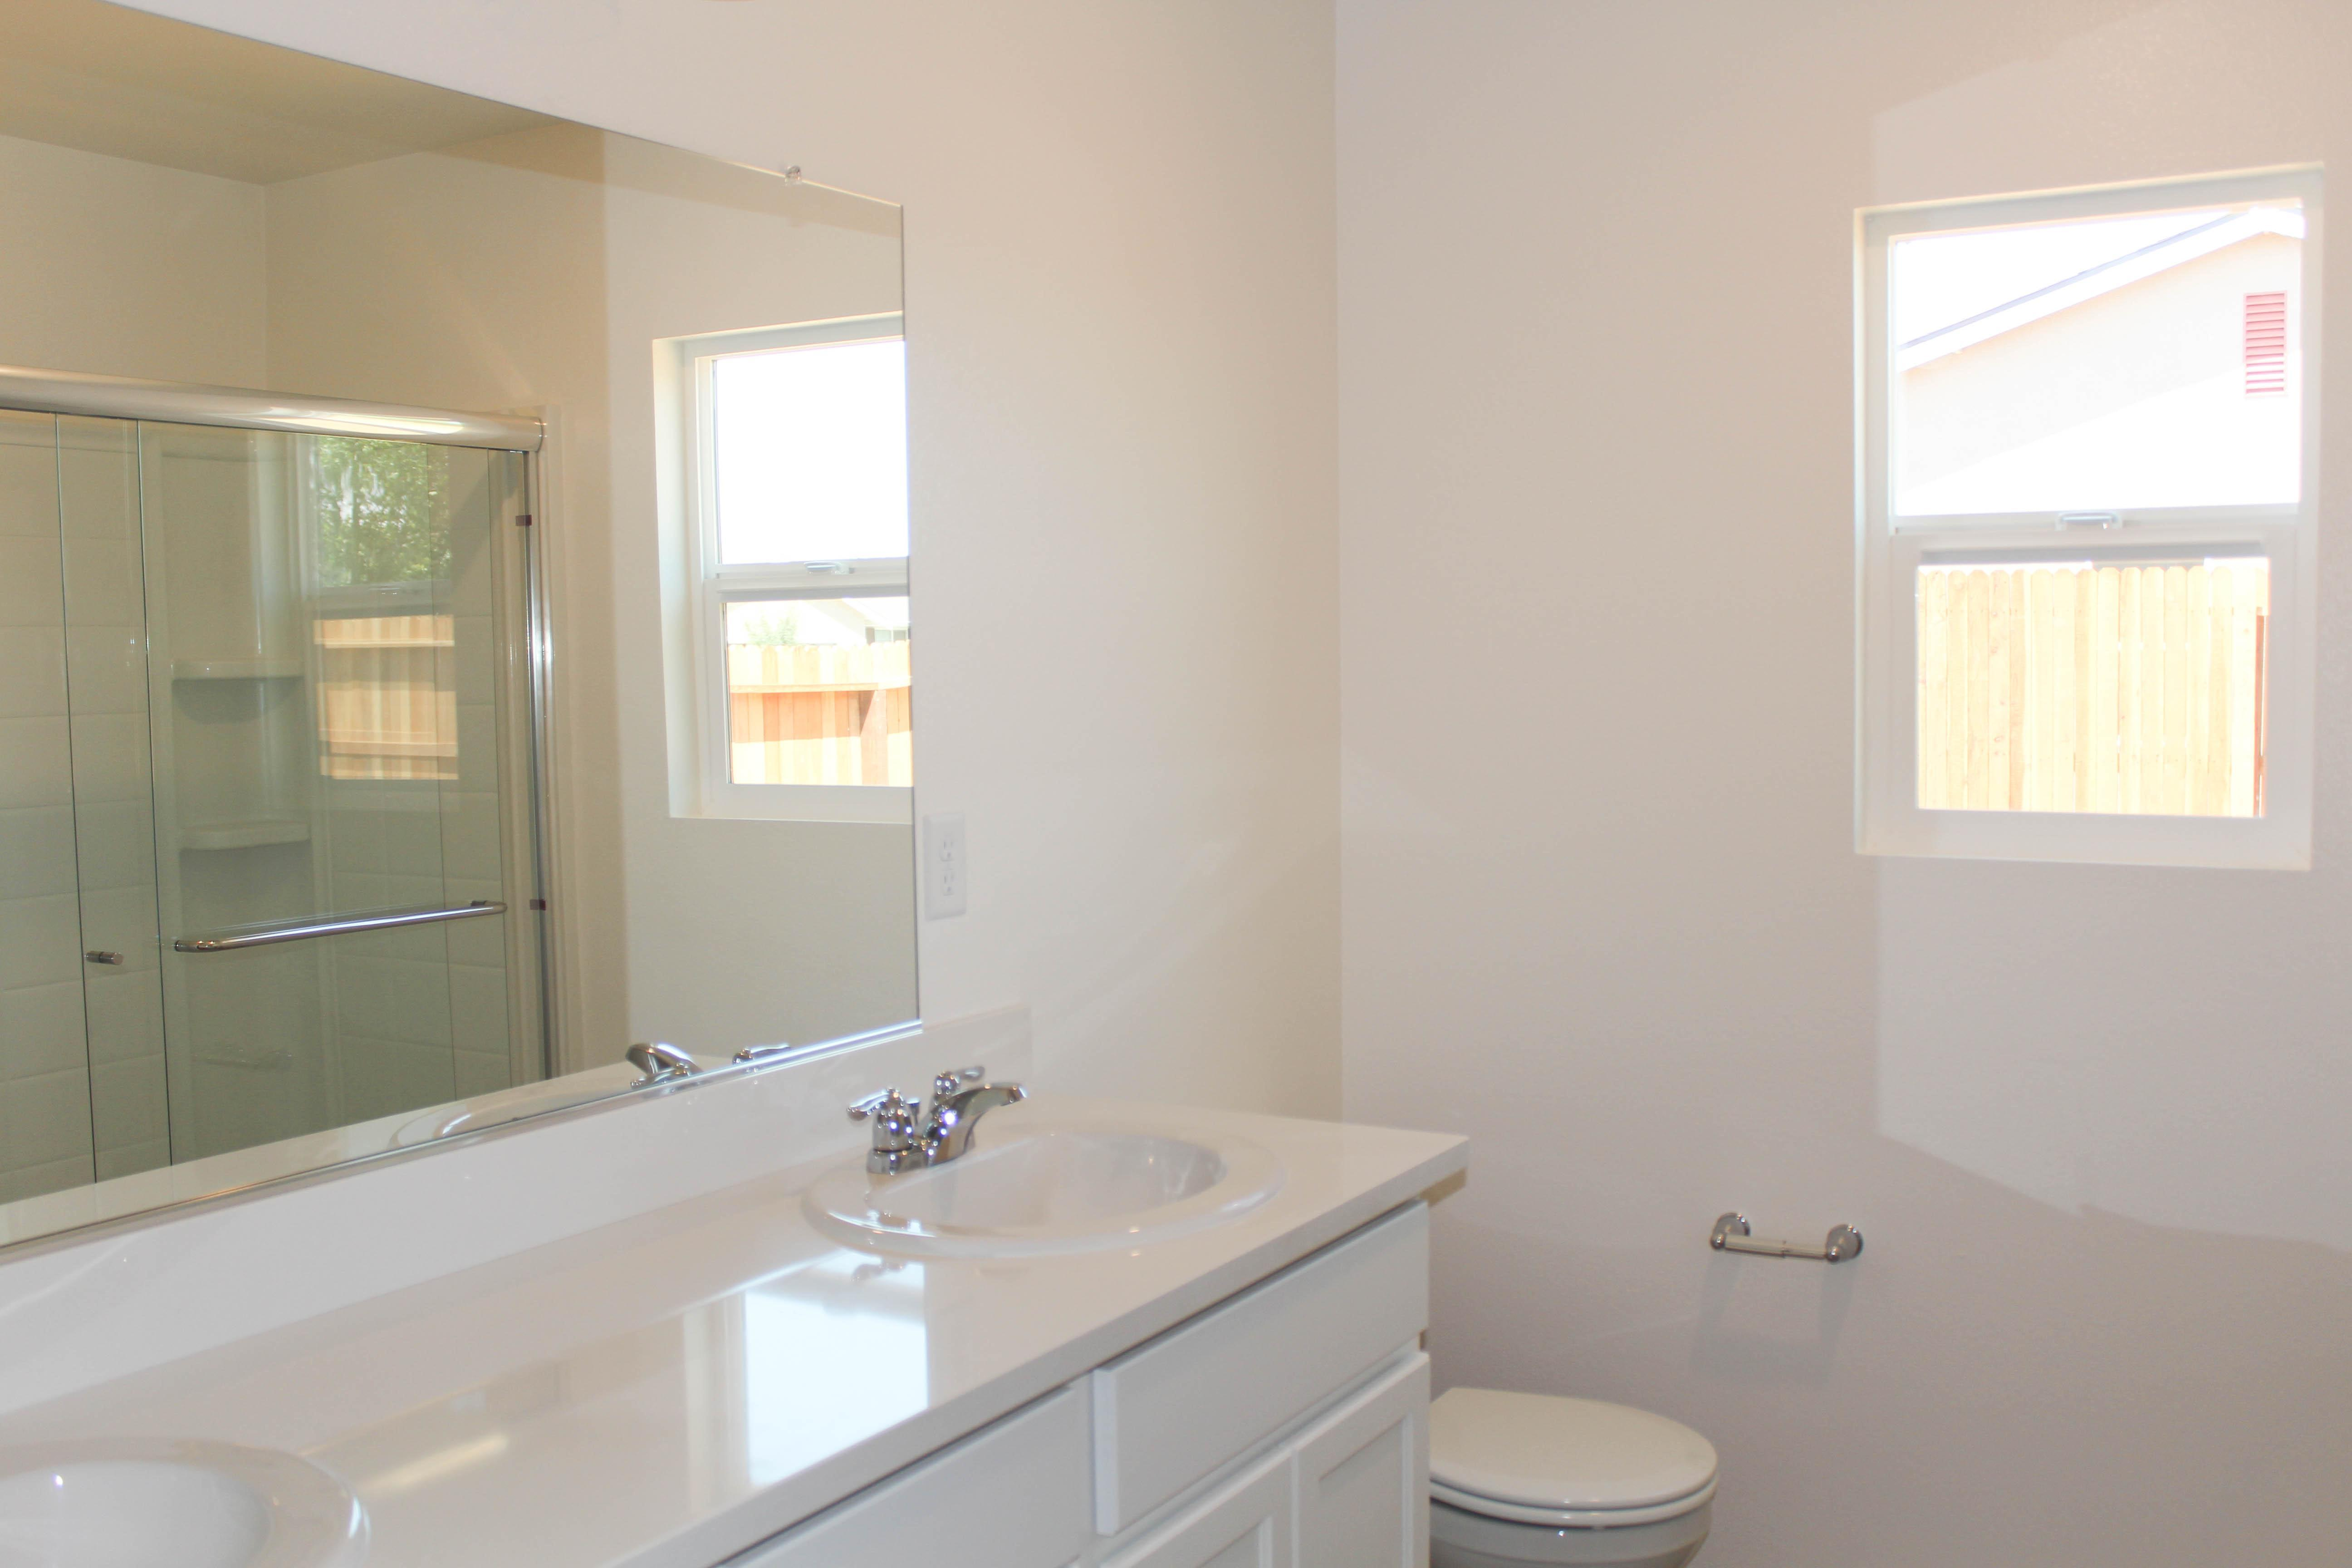 Bathroom featured in the 1A By Crowne Communities in Chico, CA